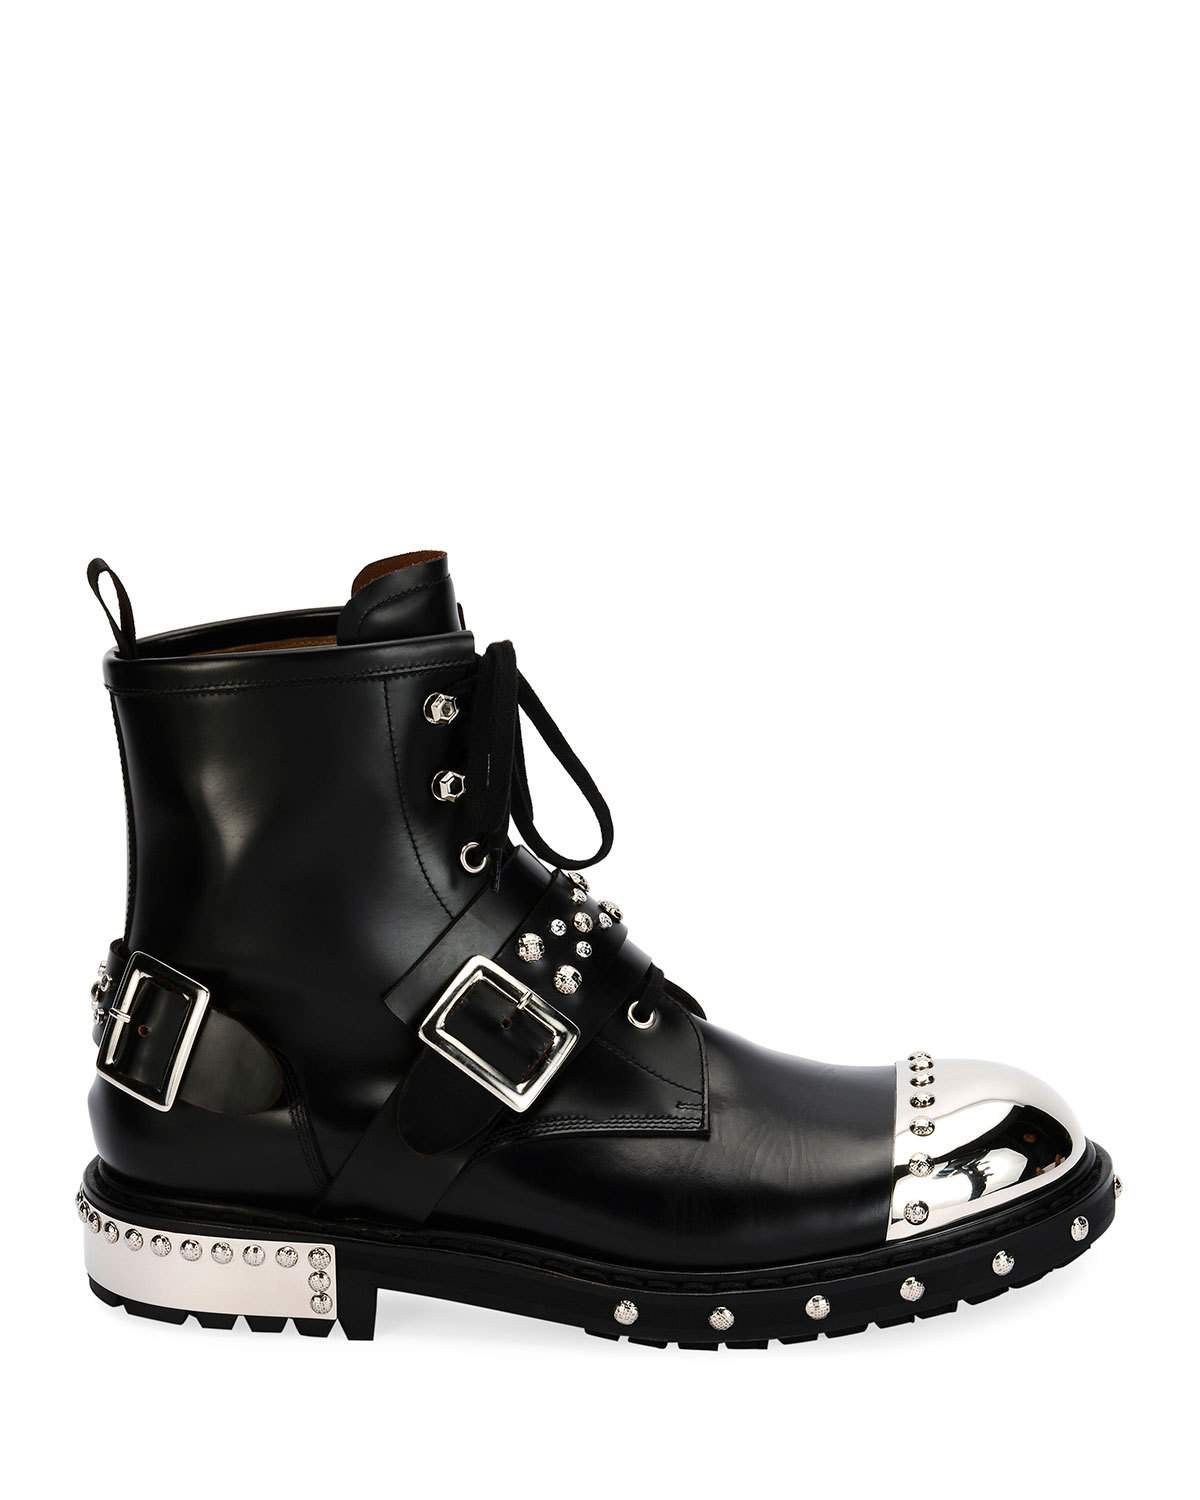 Alexander McQueen Studded Cap-Toe Leather Lace-Up Boots